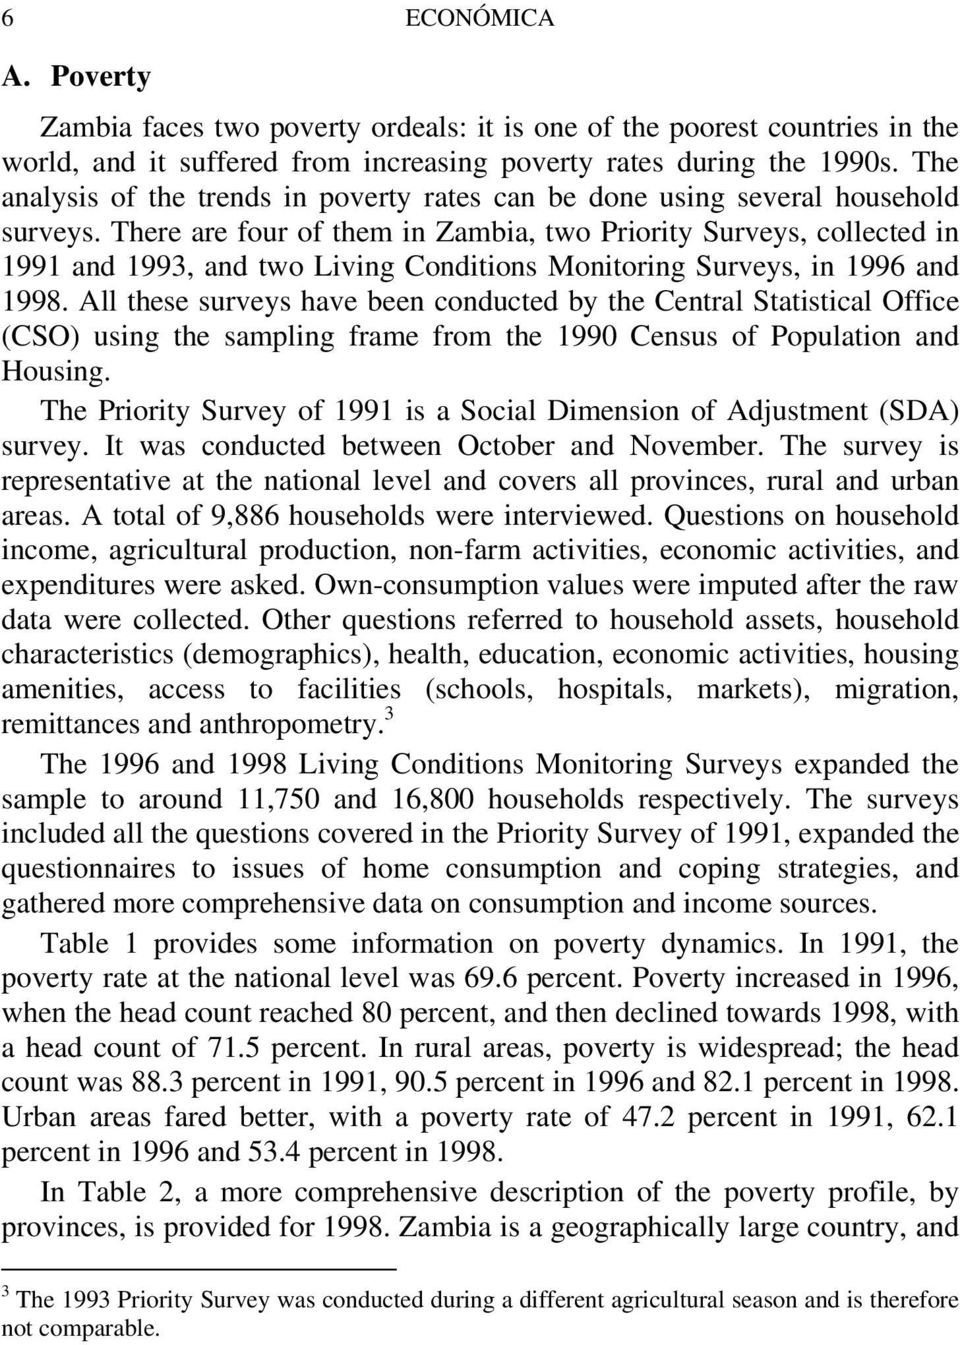 There are four of them in Zambia, two Priority Surveys, collected in 1991 and 1993, and two Living Conditions Monitoring Surveys, in 1996 and 1998.